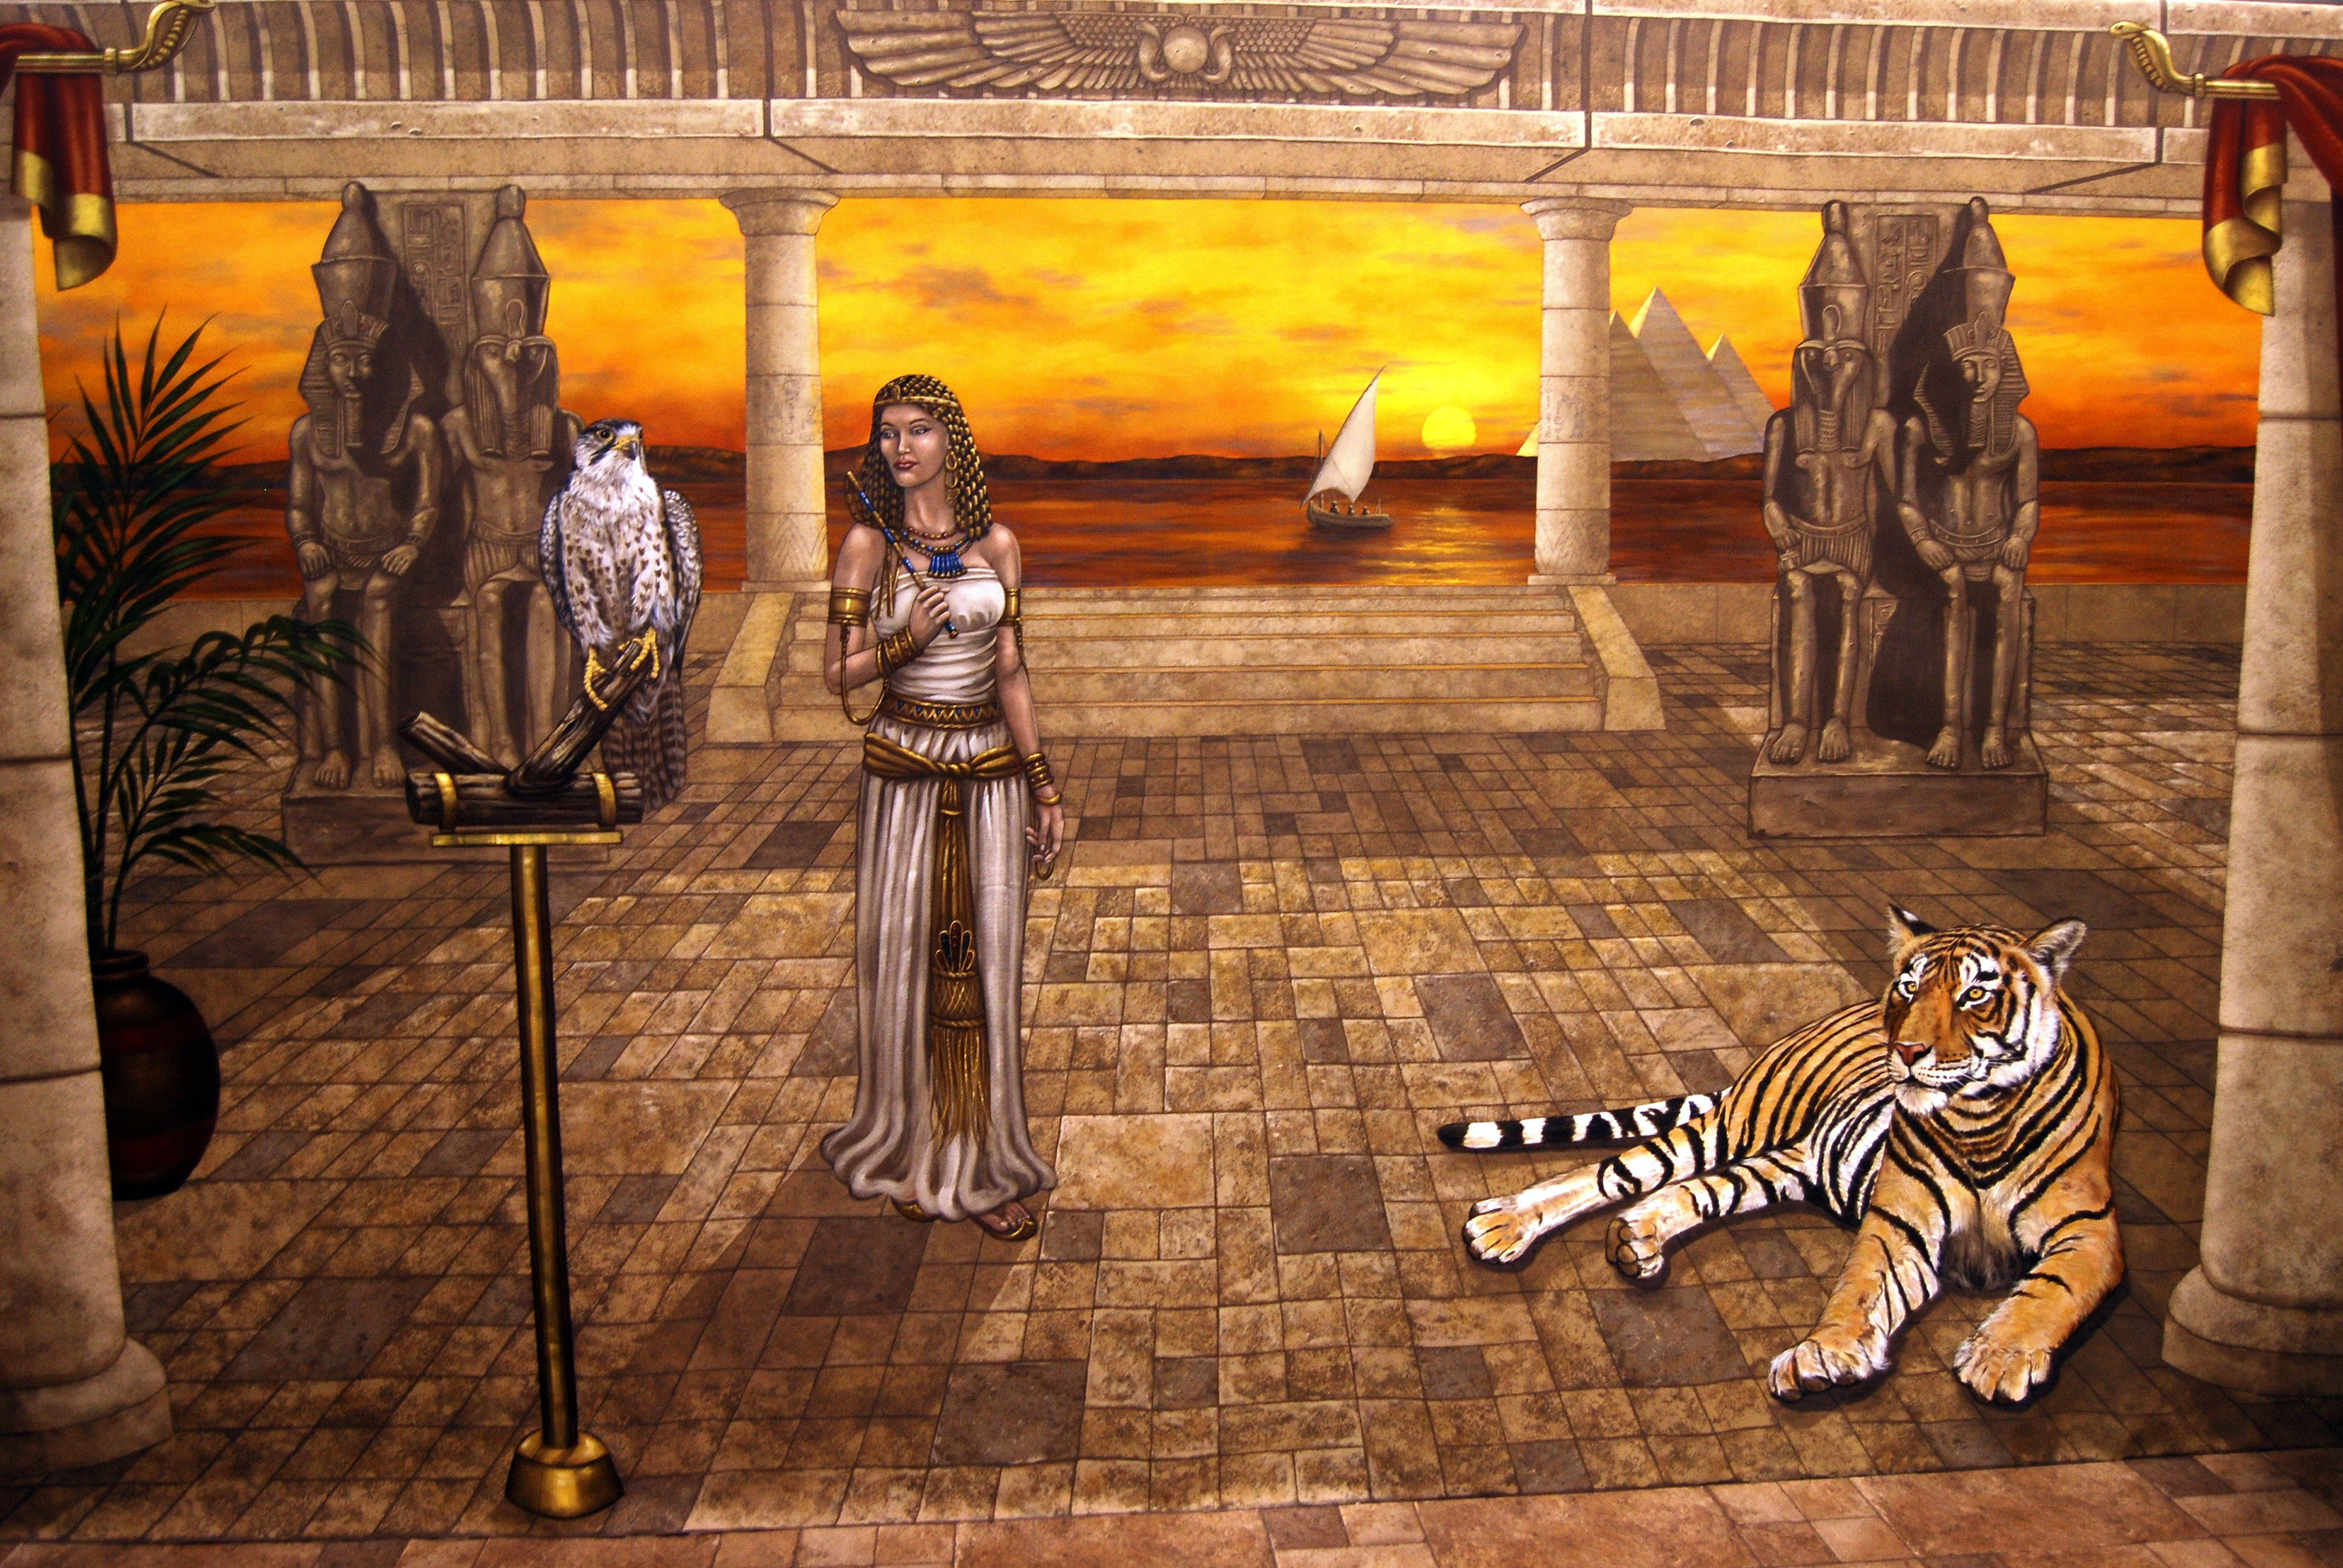 Ancient Egypt Wall Mural 8 X 20 Feet. In Home Office By Tom Taylor Of Part 42